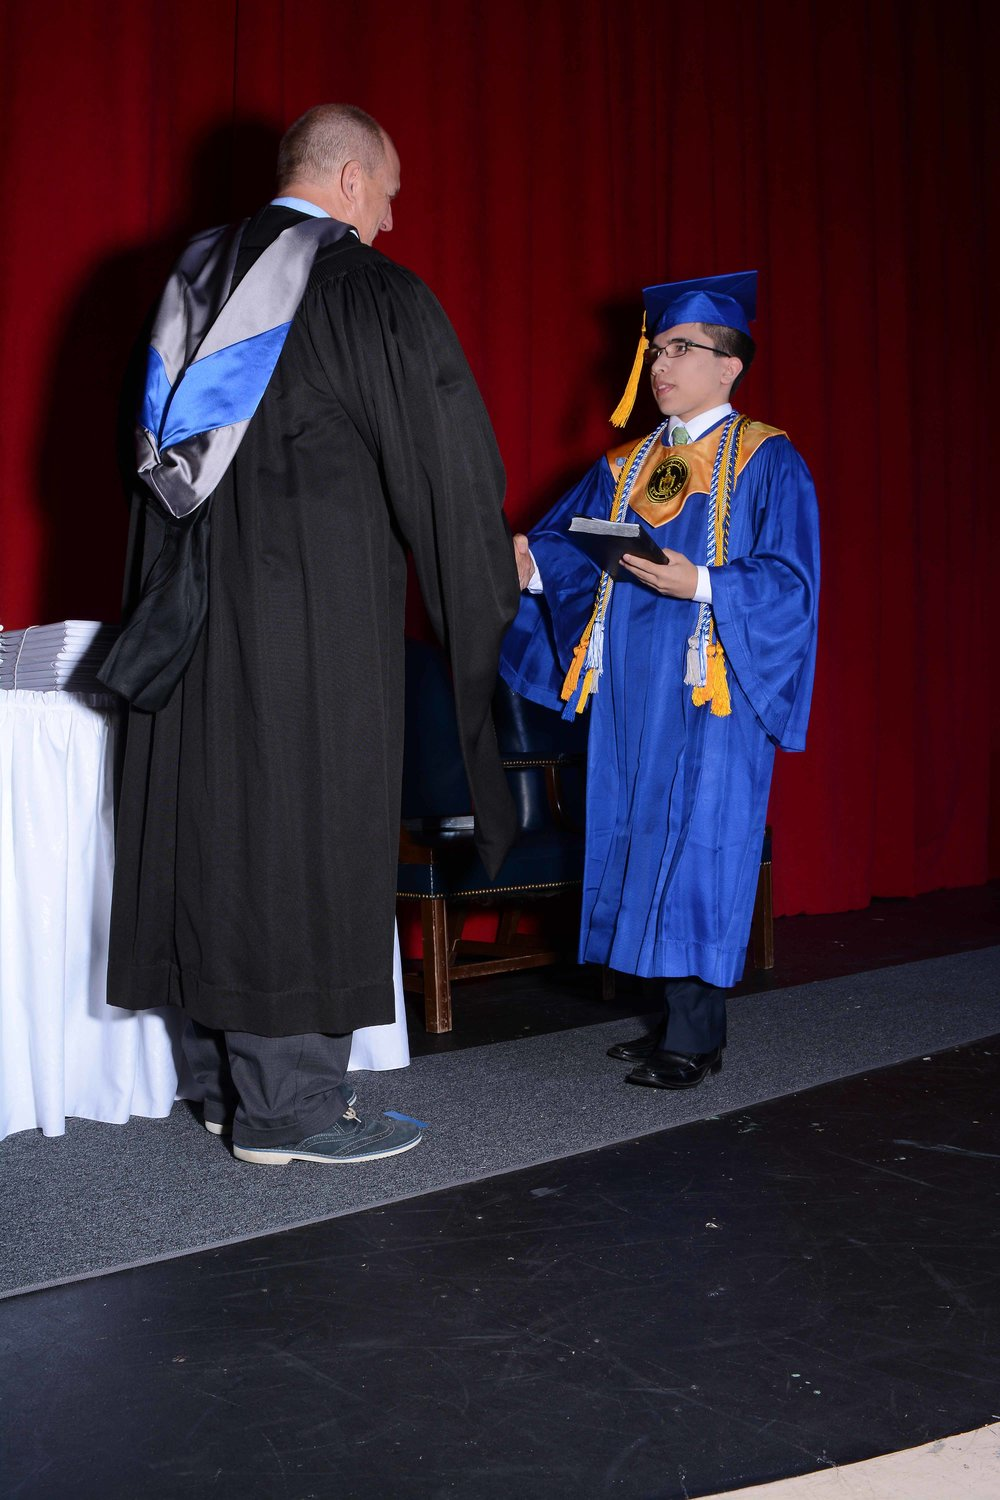 May14 Commencement41.jpg